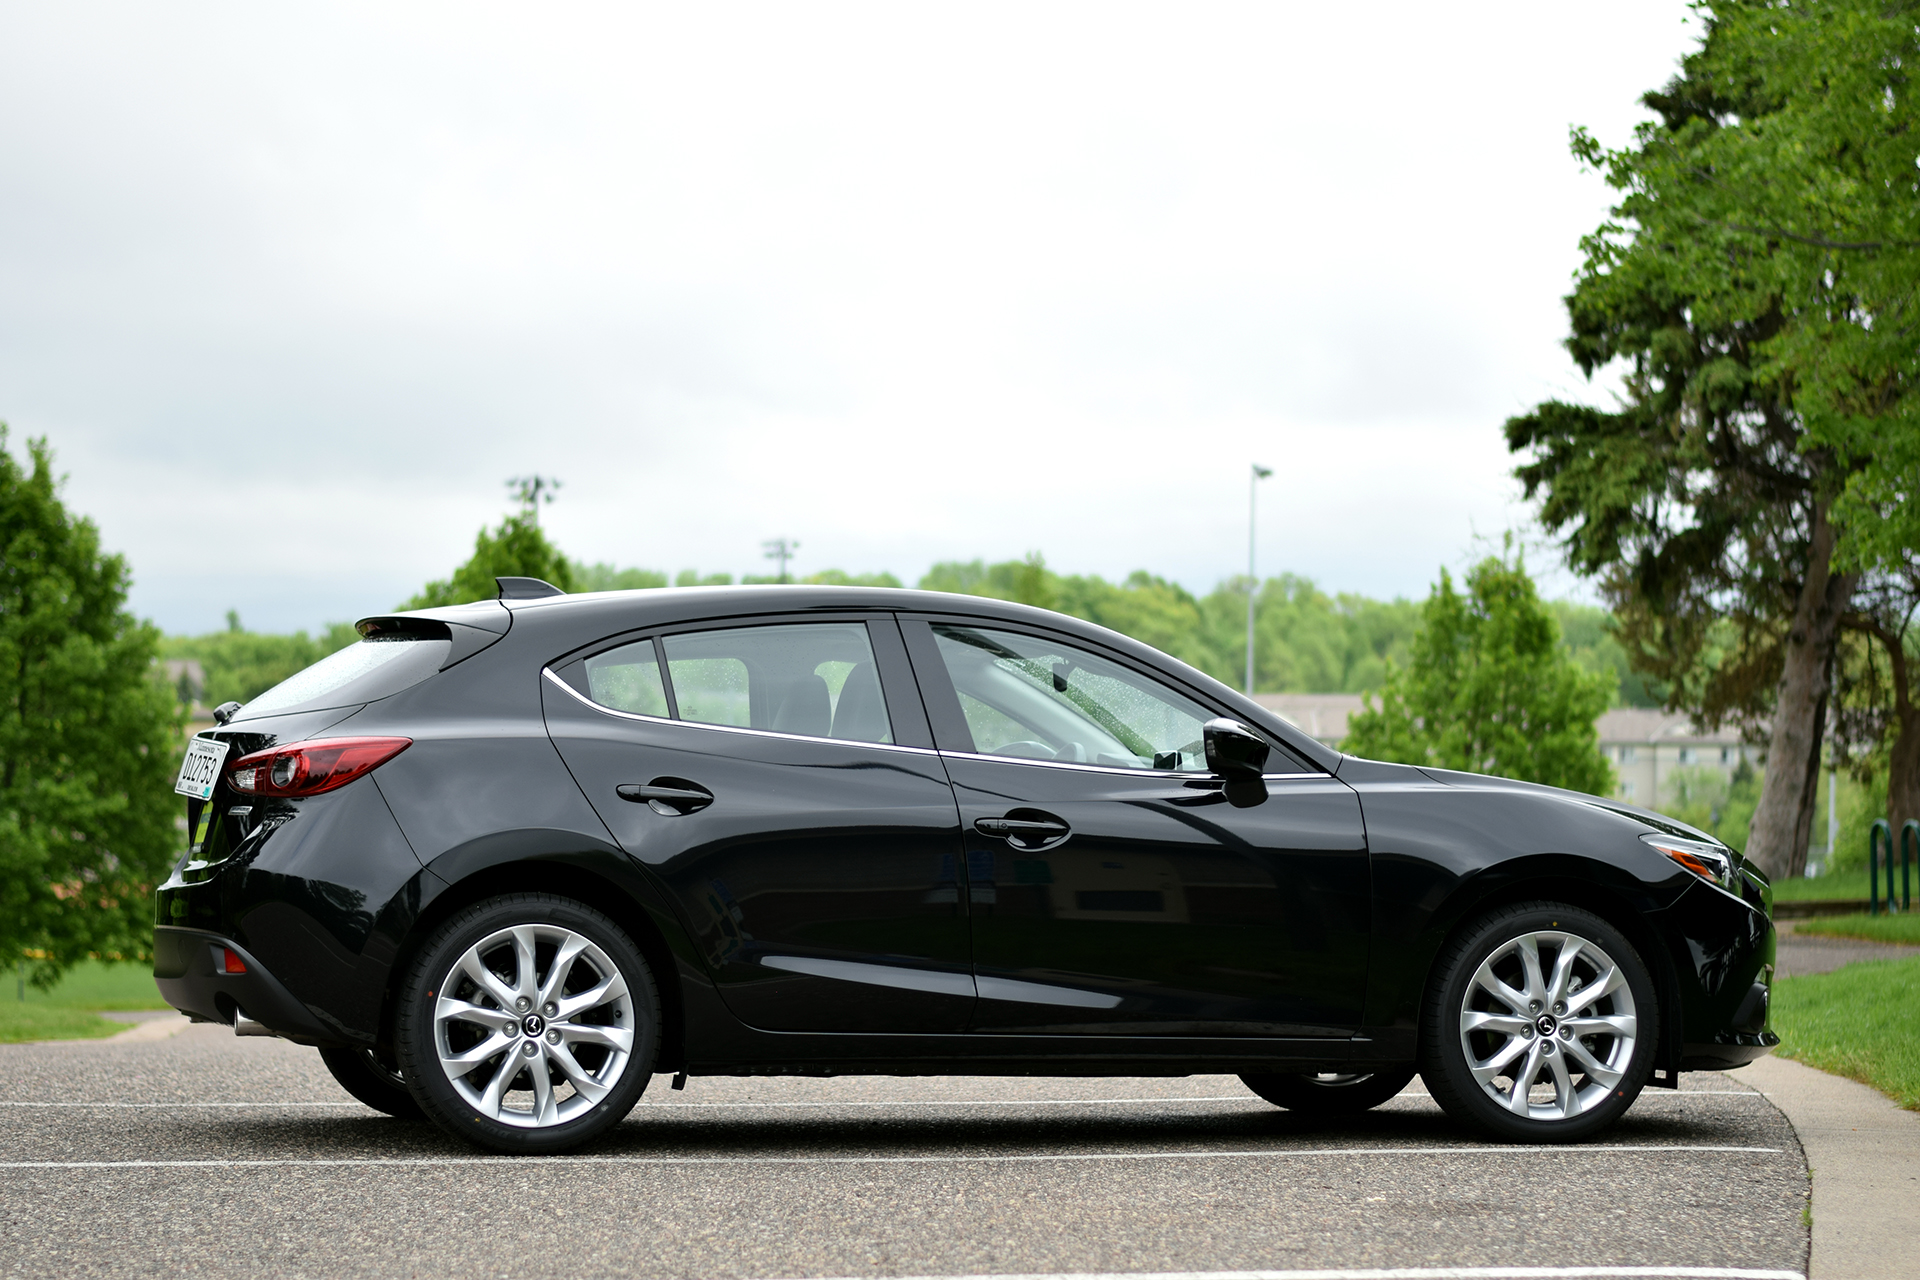 Test Drive: 2014 Mazda3 s-Grand Touring - Morrie's Auto Group2014 Mazda 3 Hatchback Black